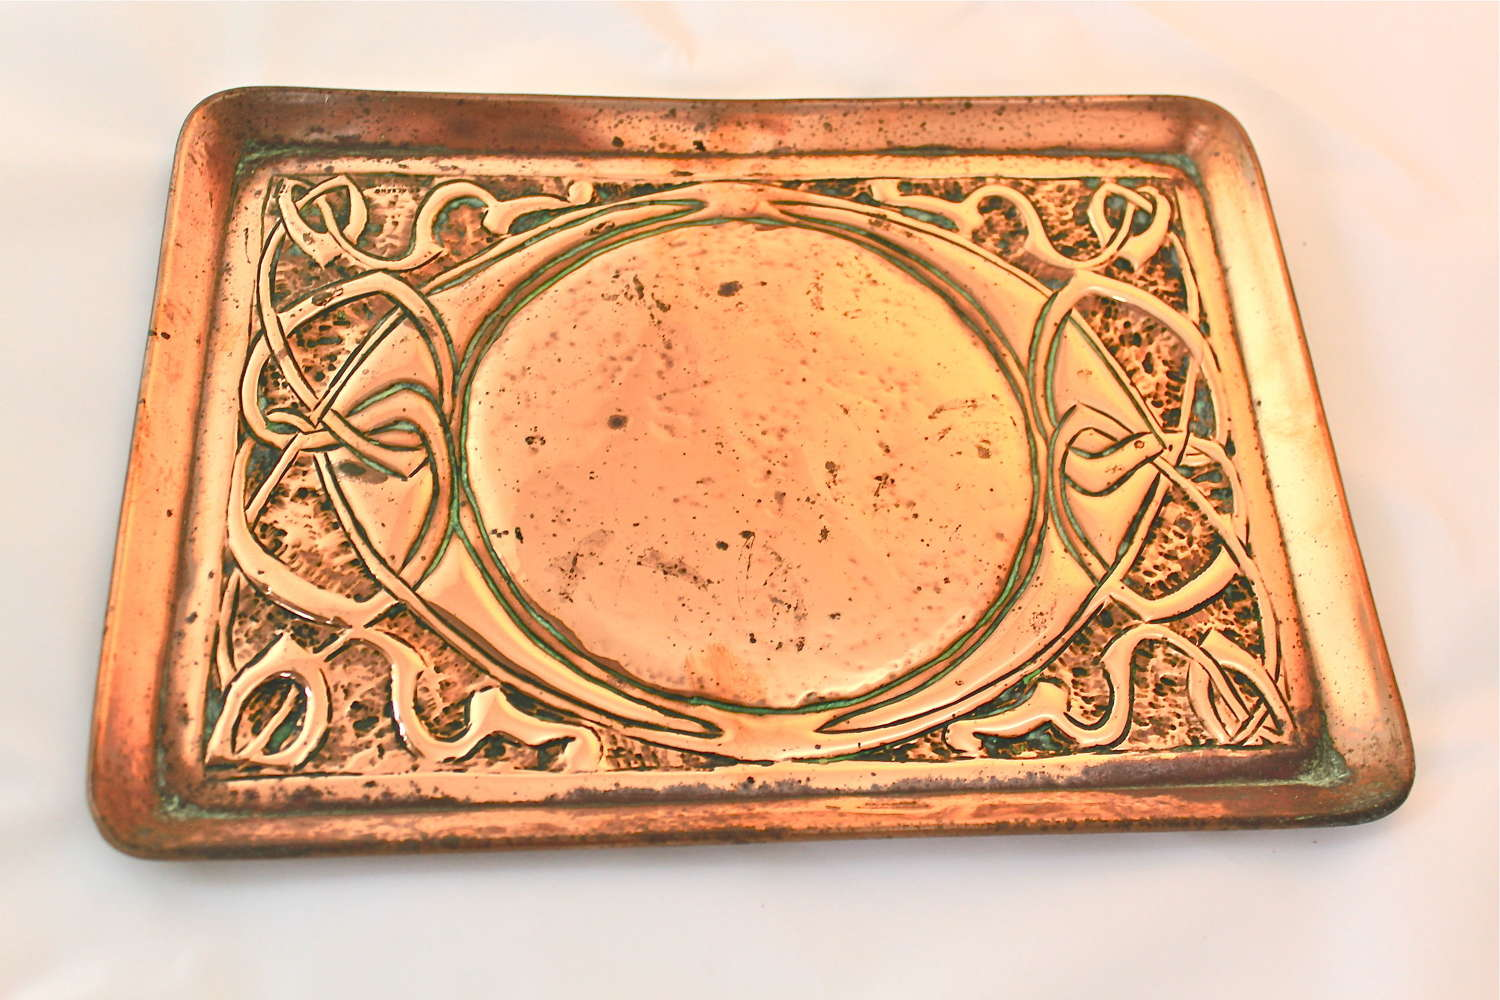 An Arts & Crafts embossed copper tray